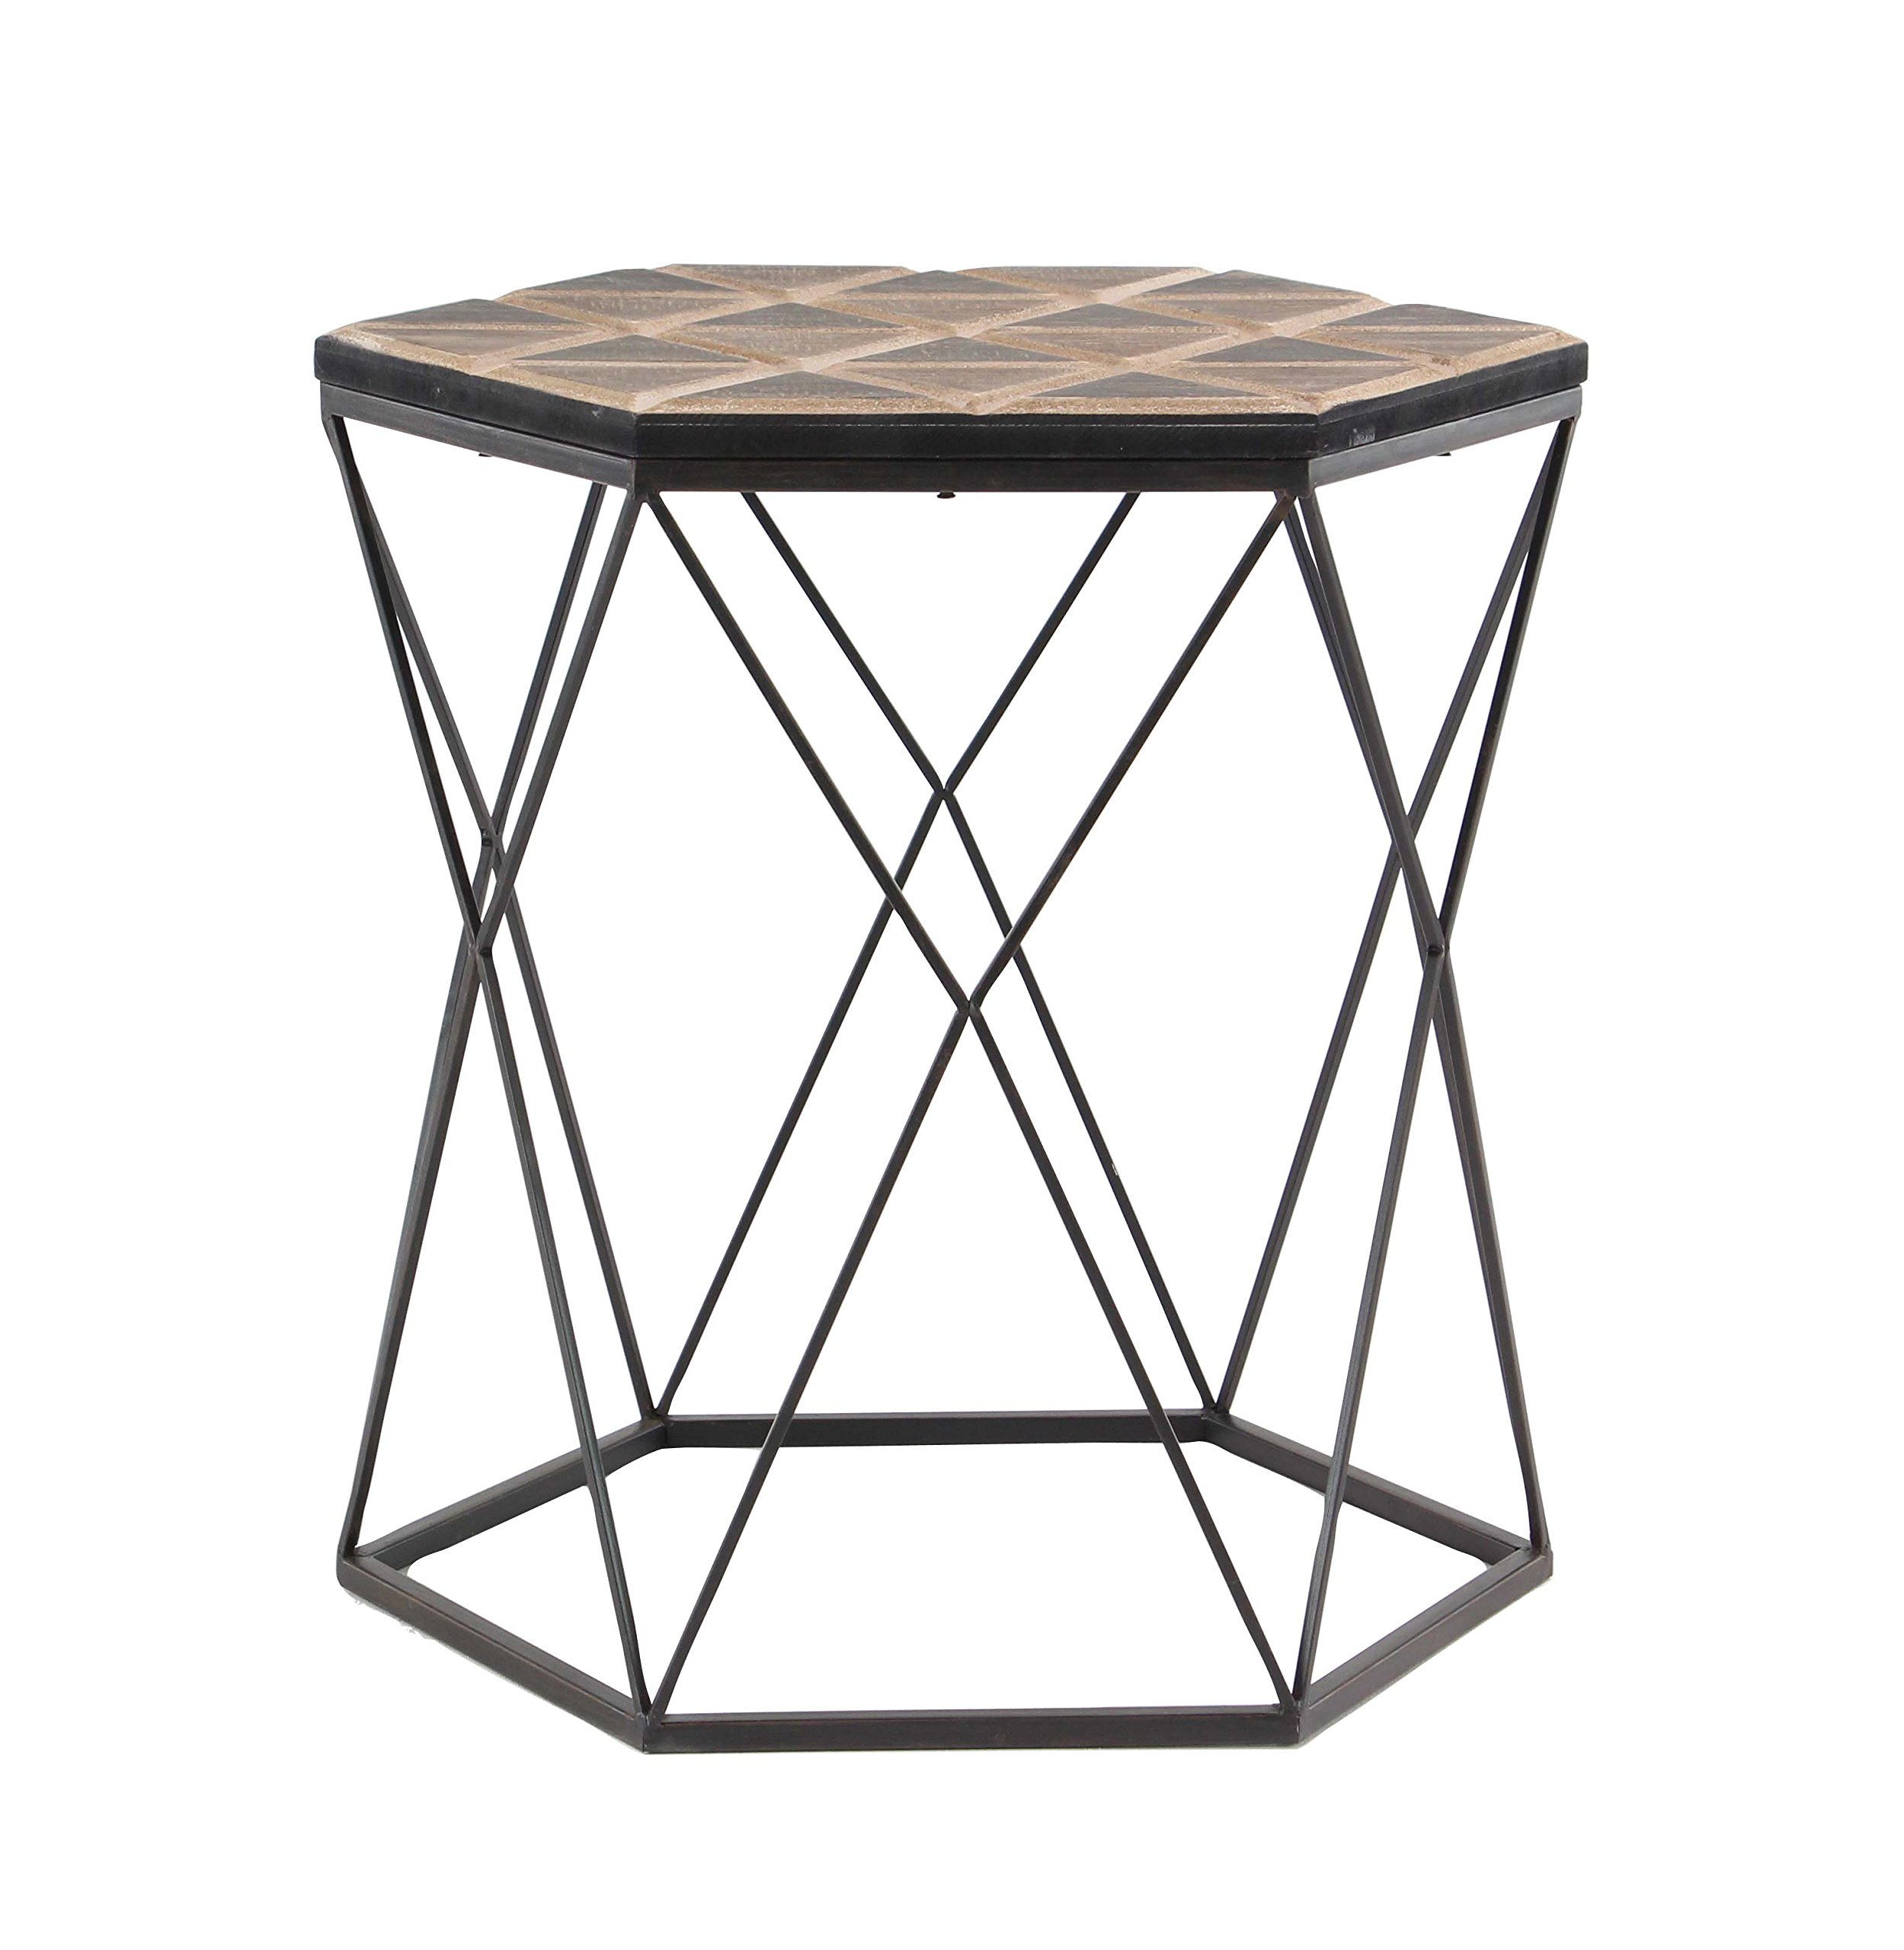 Deco 79 98748 Accent Table Brown/Gray